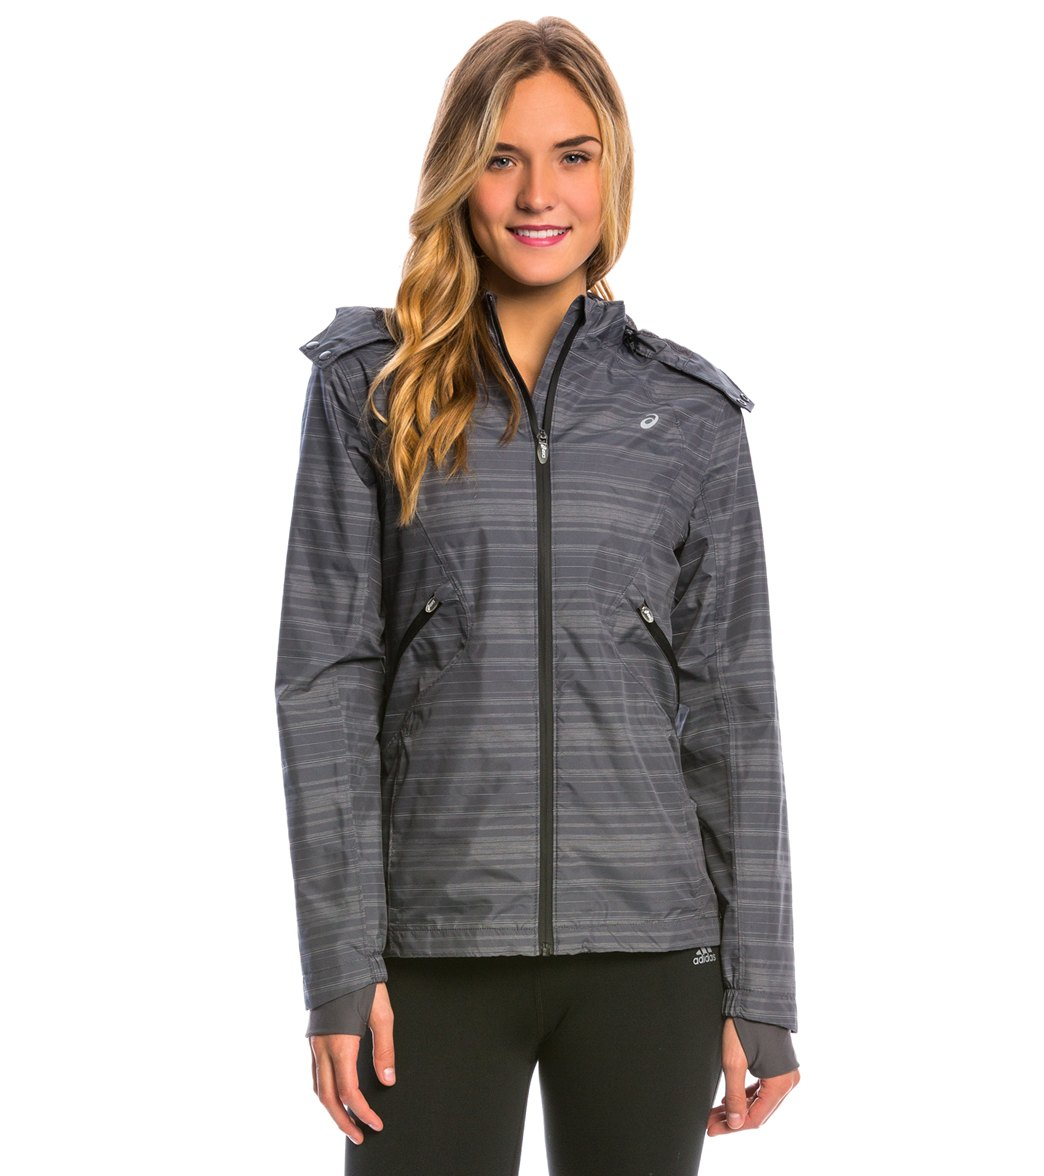 Women s Triathlon Running Jackets   Vests at SwimOutlet.com 525028e377